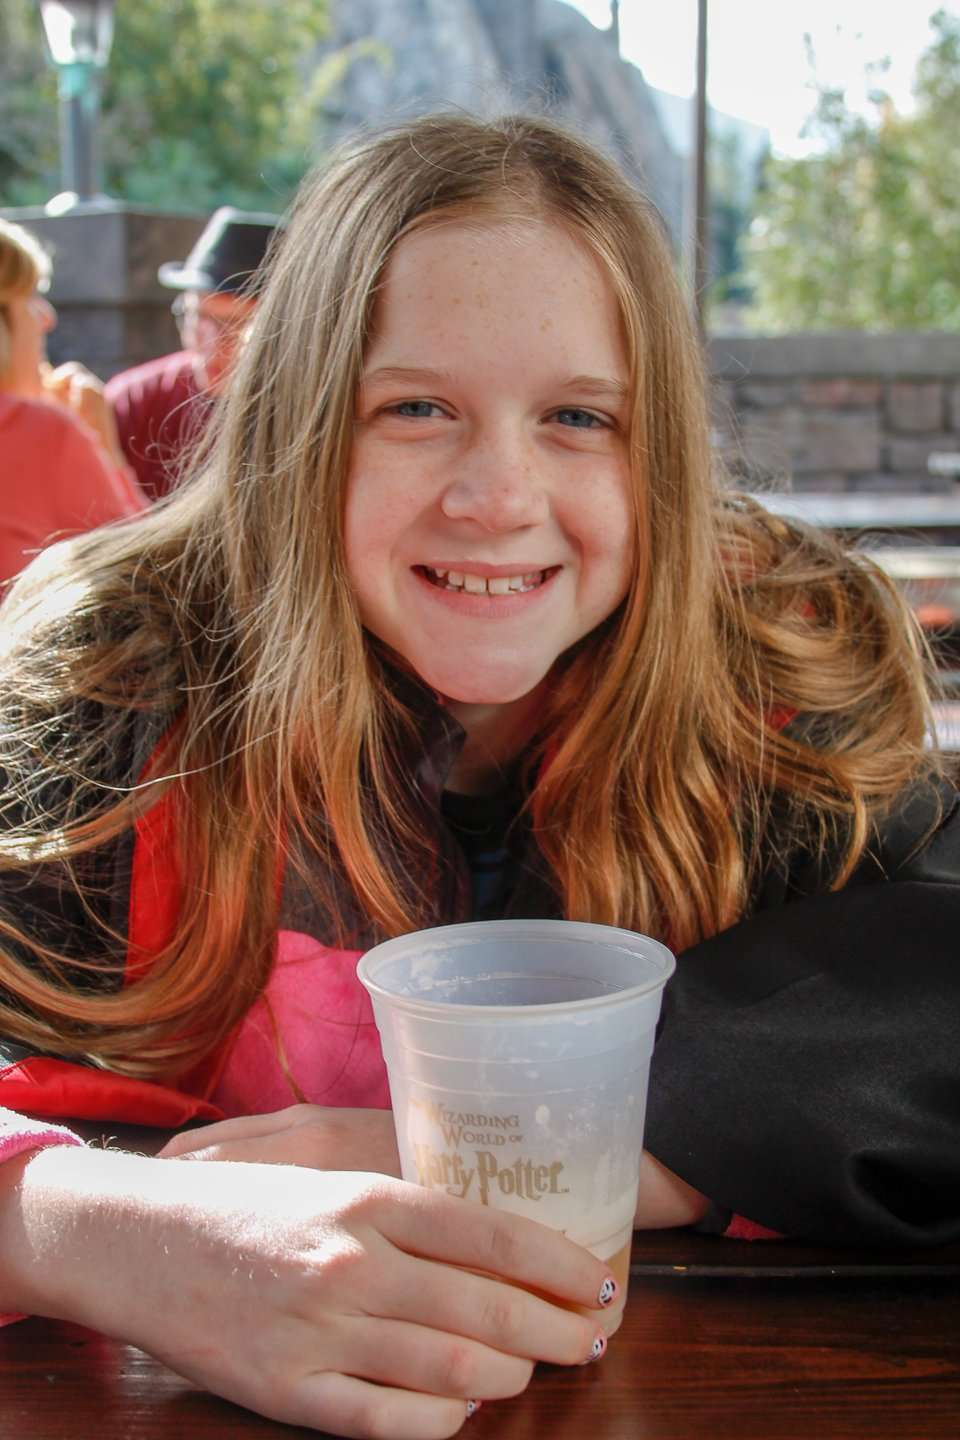 girl drinking Butterbeer